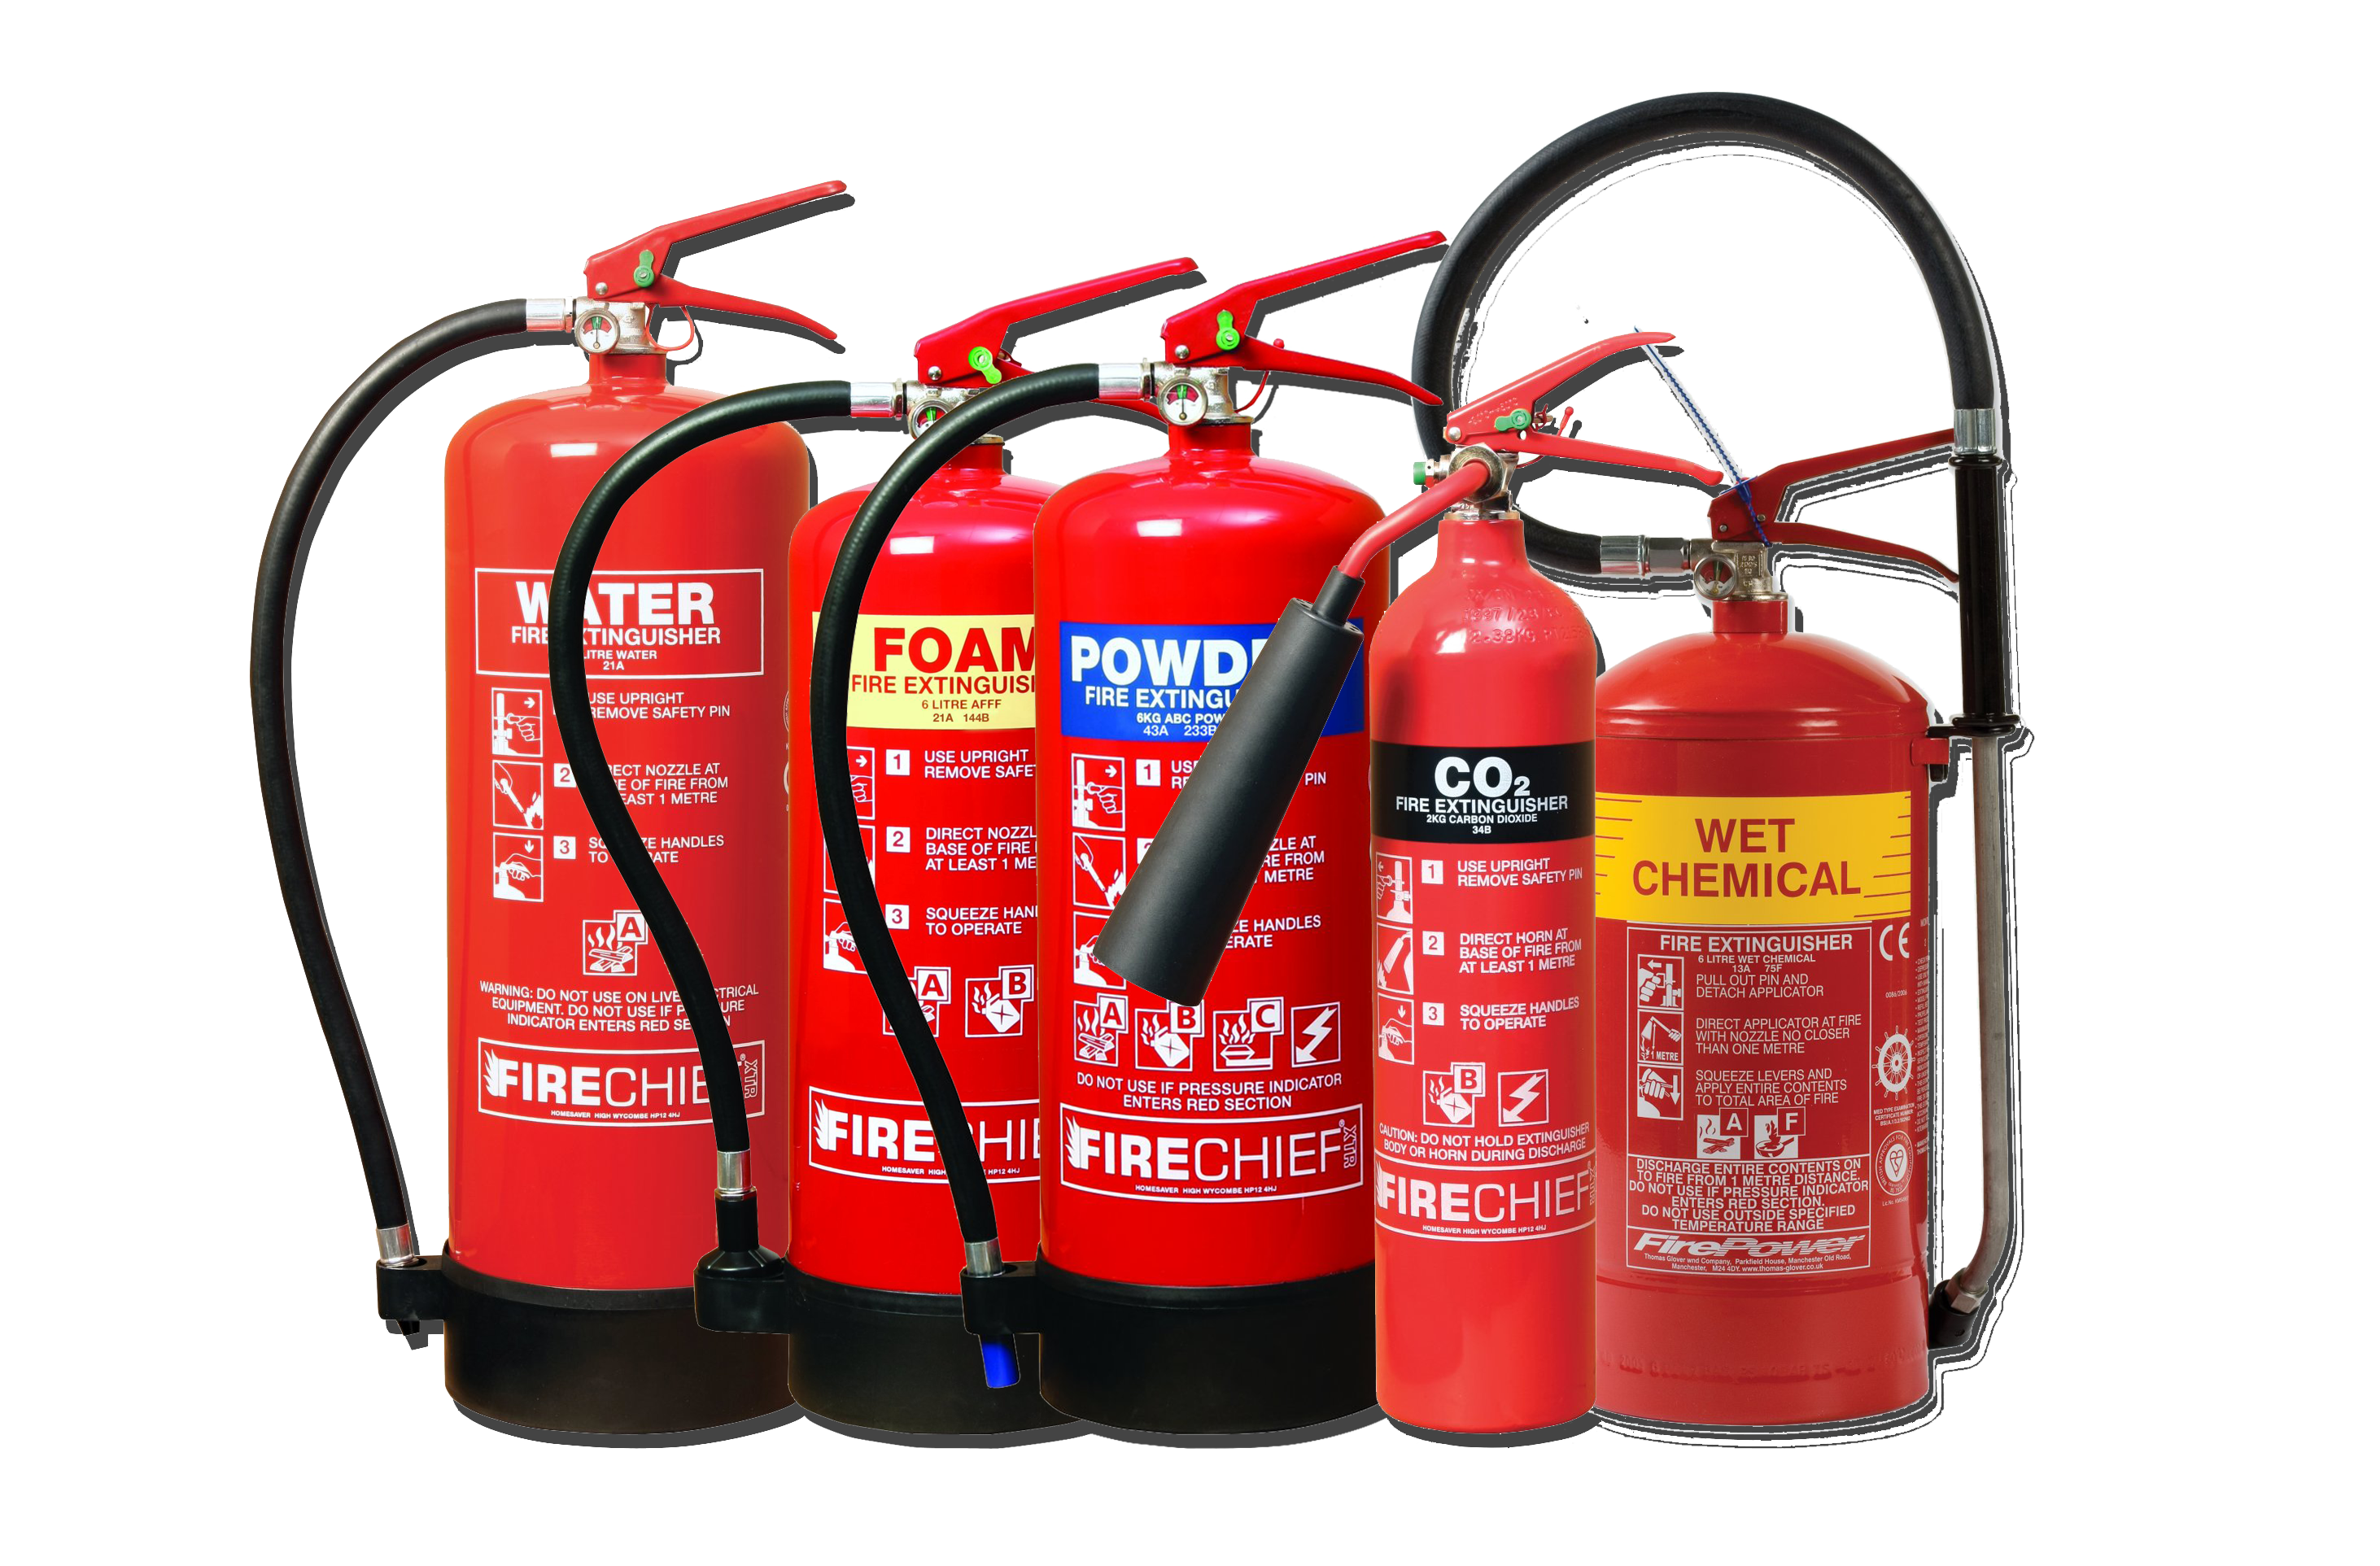 Fire Extinguisher service, supply and commissioning - Unique Fire Protection